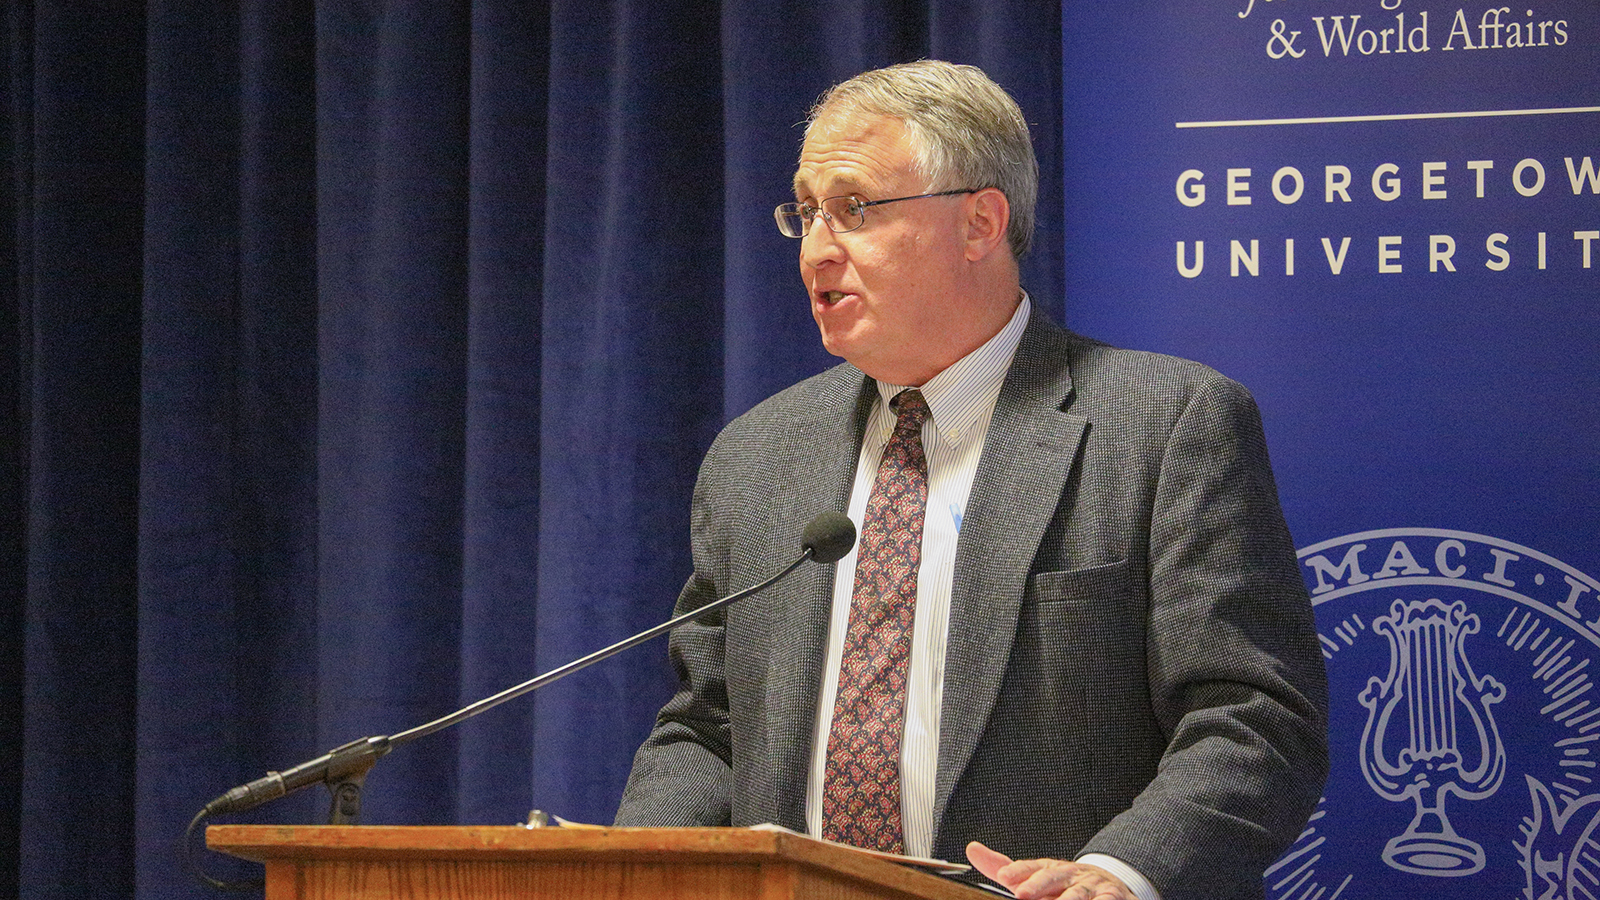 David A. Koplow of Georgetown Law provides reflections on international law.